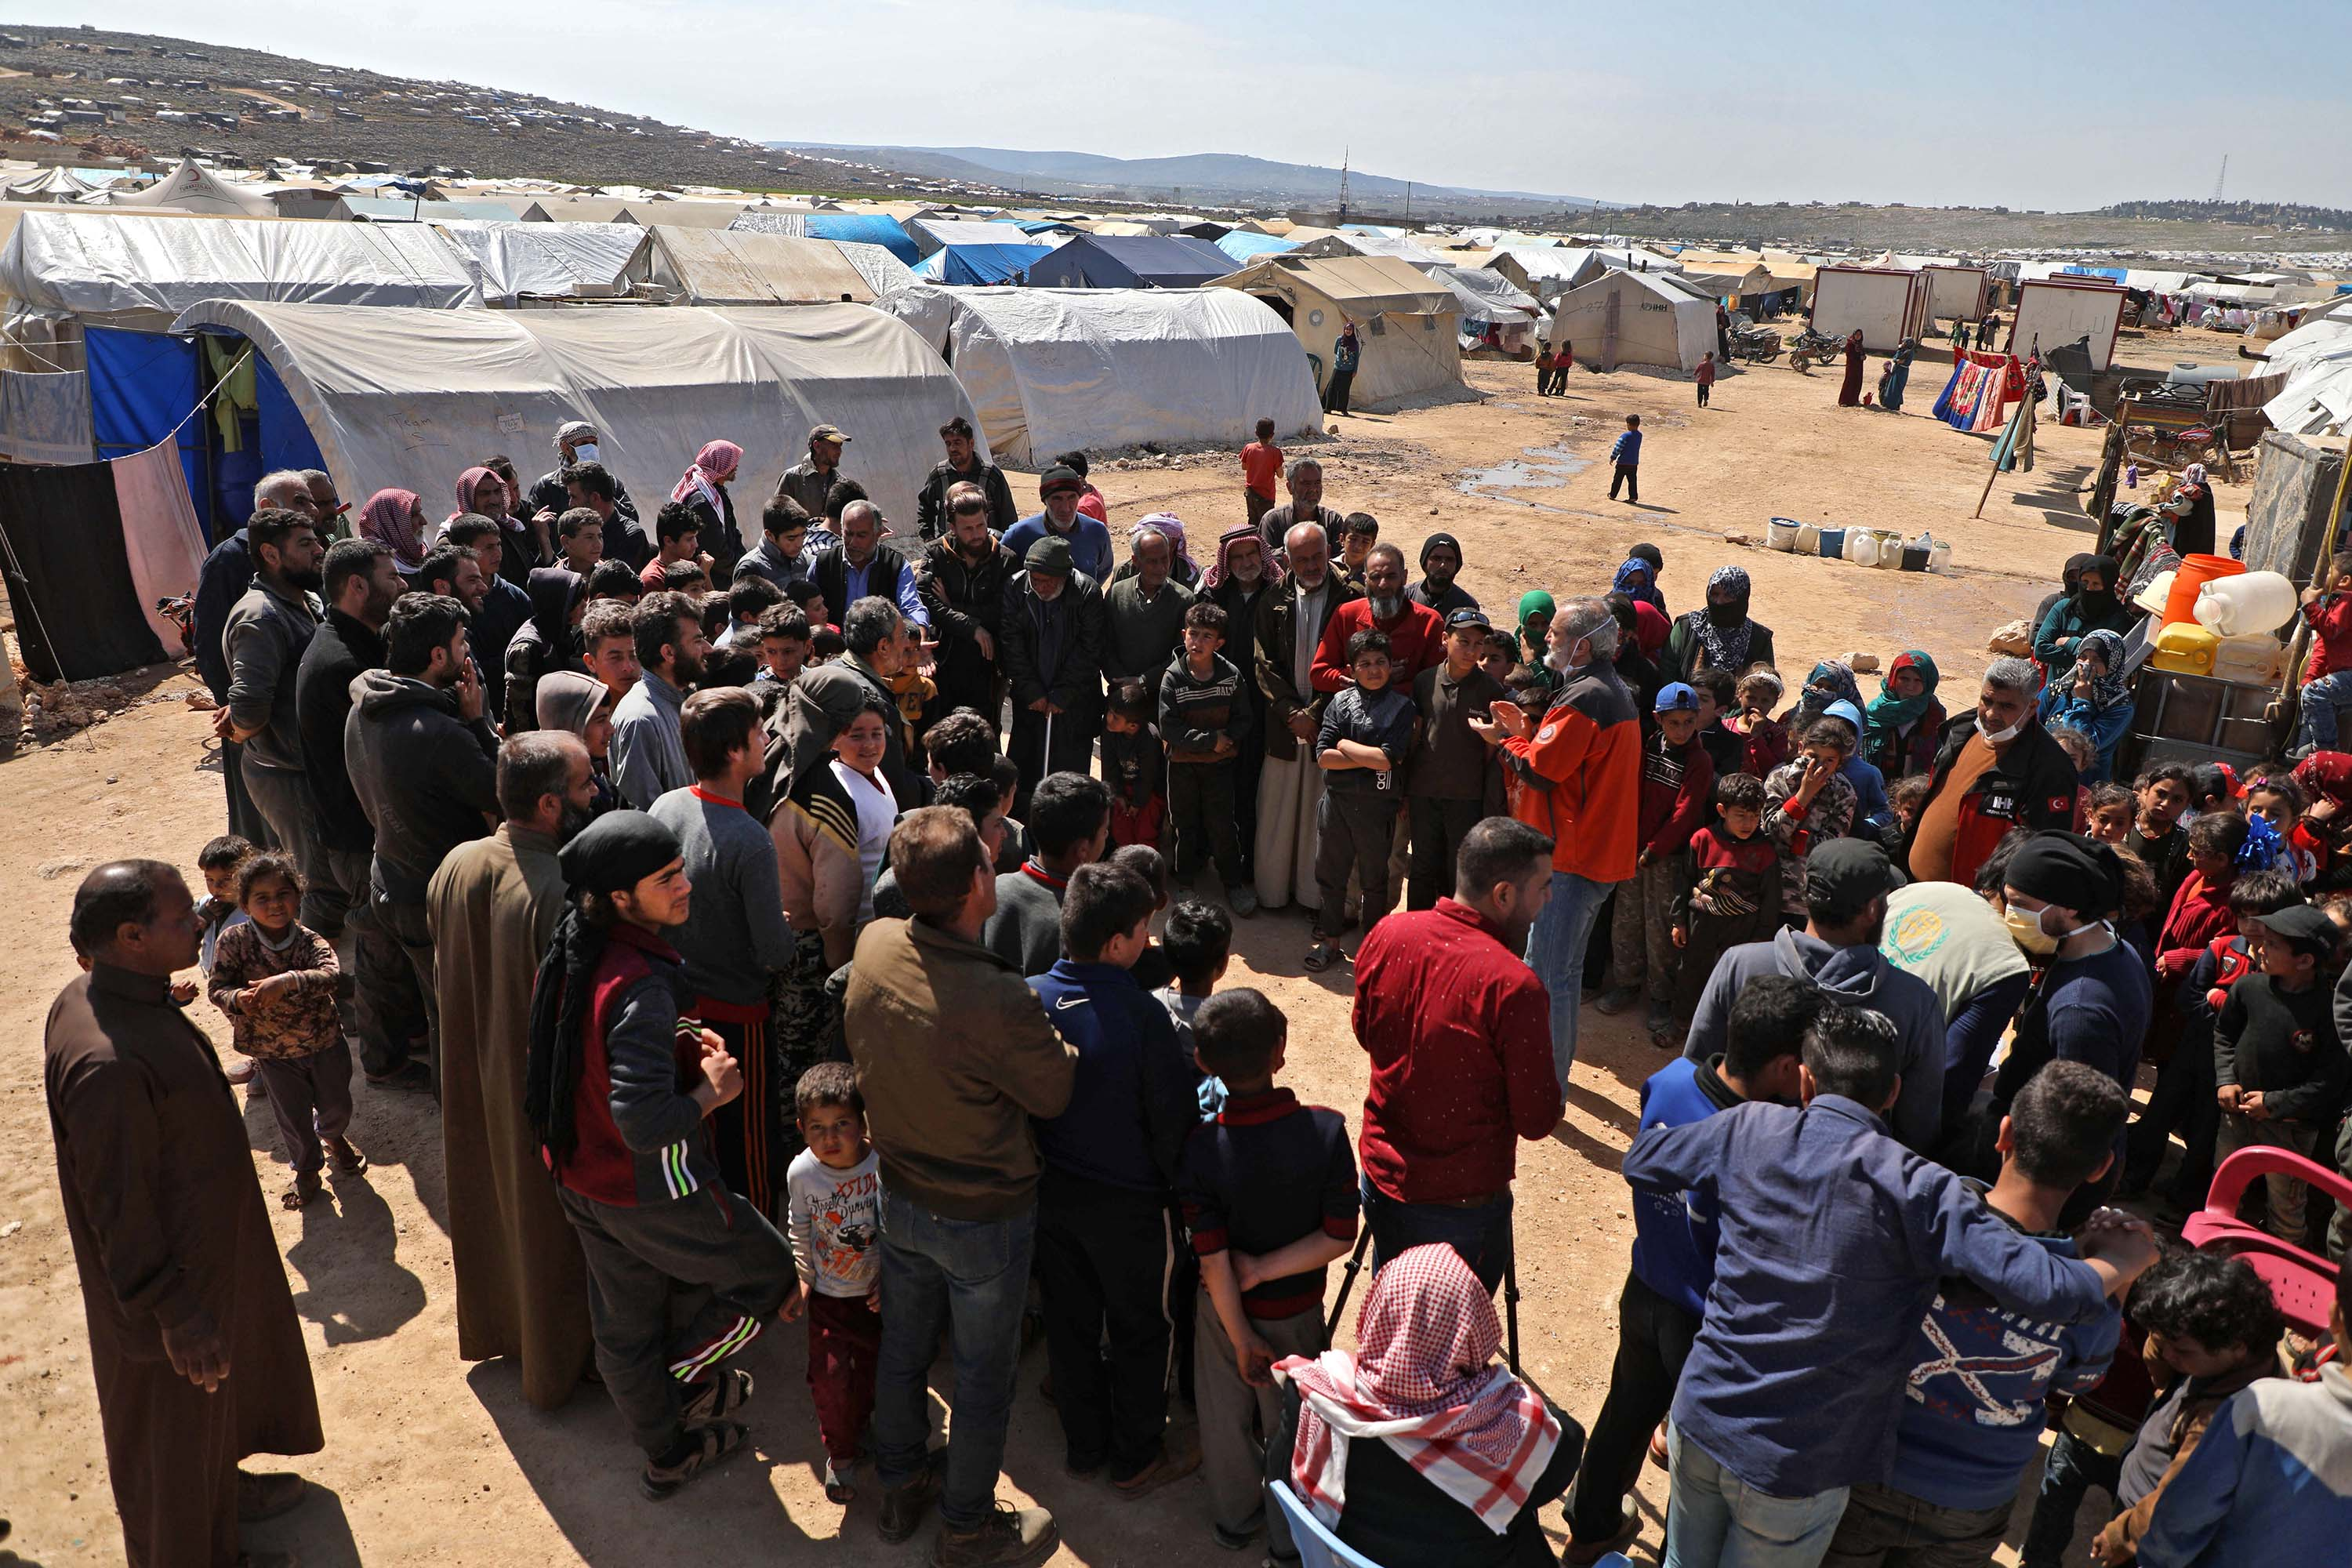 Medical staff from a Turkish humanitarian group give a lecture to raise awareness about the coronavirus epidemic at a camp for displaced Syrians in Kafr Lusin, on the border with Turkey, in Syria's northwestern province of Idlib, on March 23.